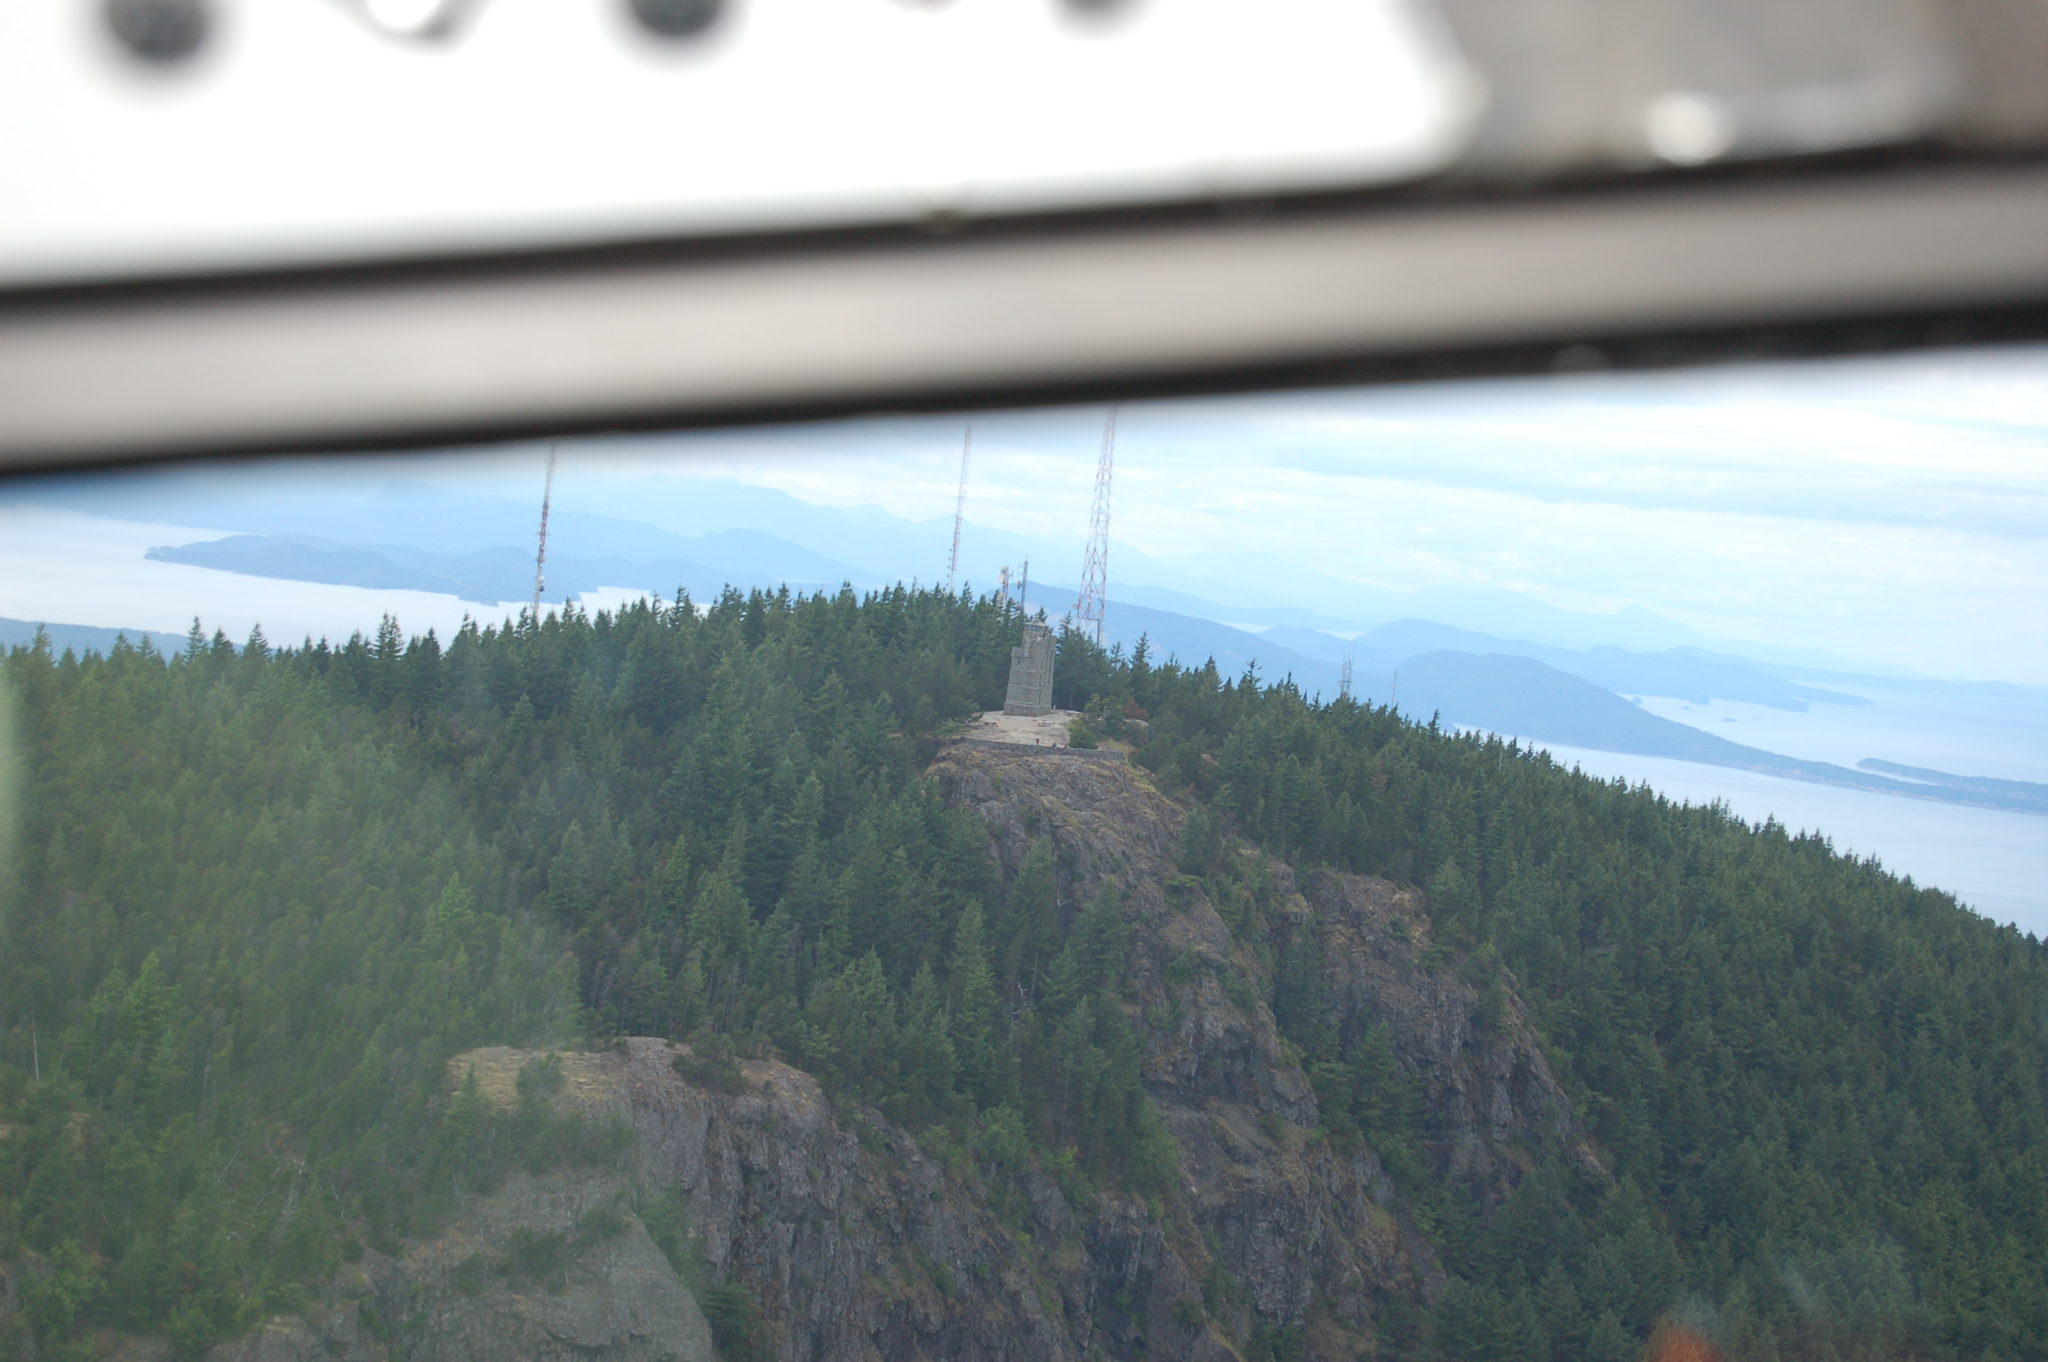 Mt. Constitution, Orcas Island, San Juan Islands chain, Washington State. Photo taken from Historic Flight Foundation DC-3 by Gail Twelves.